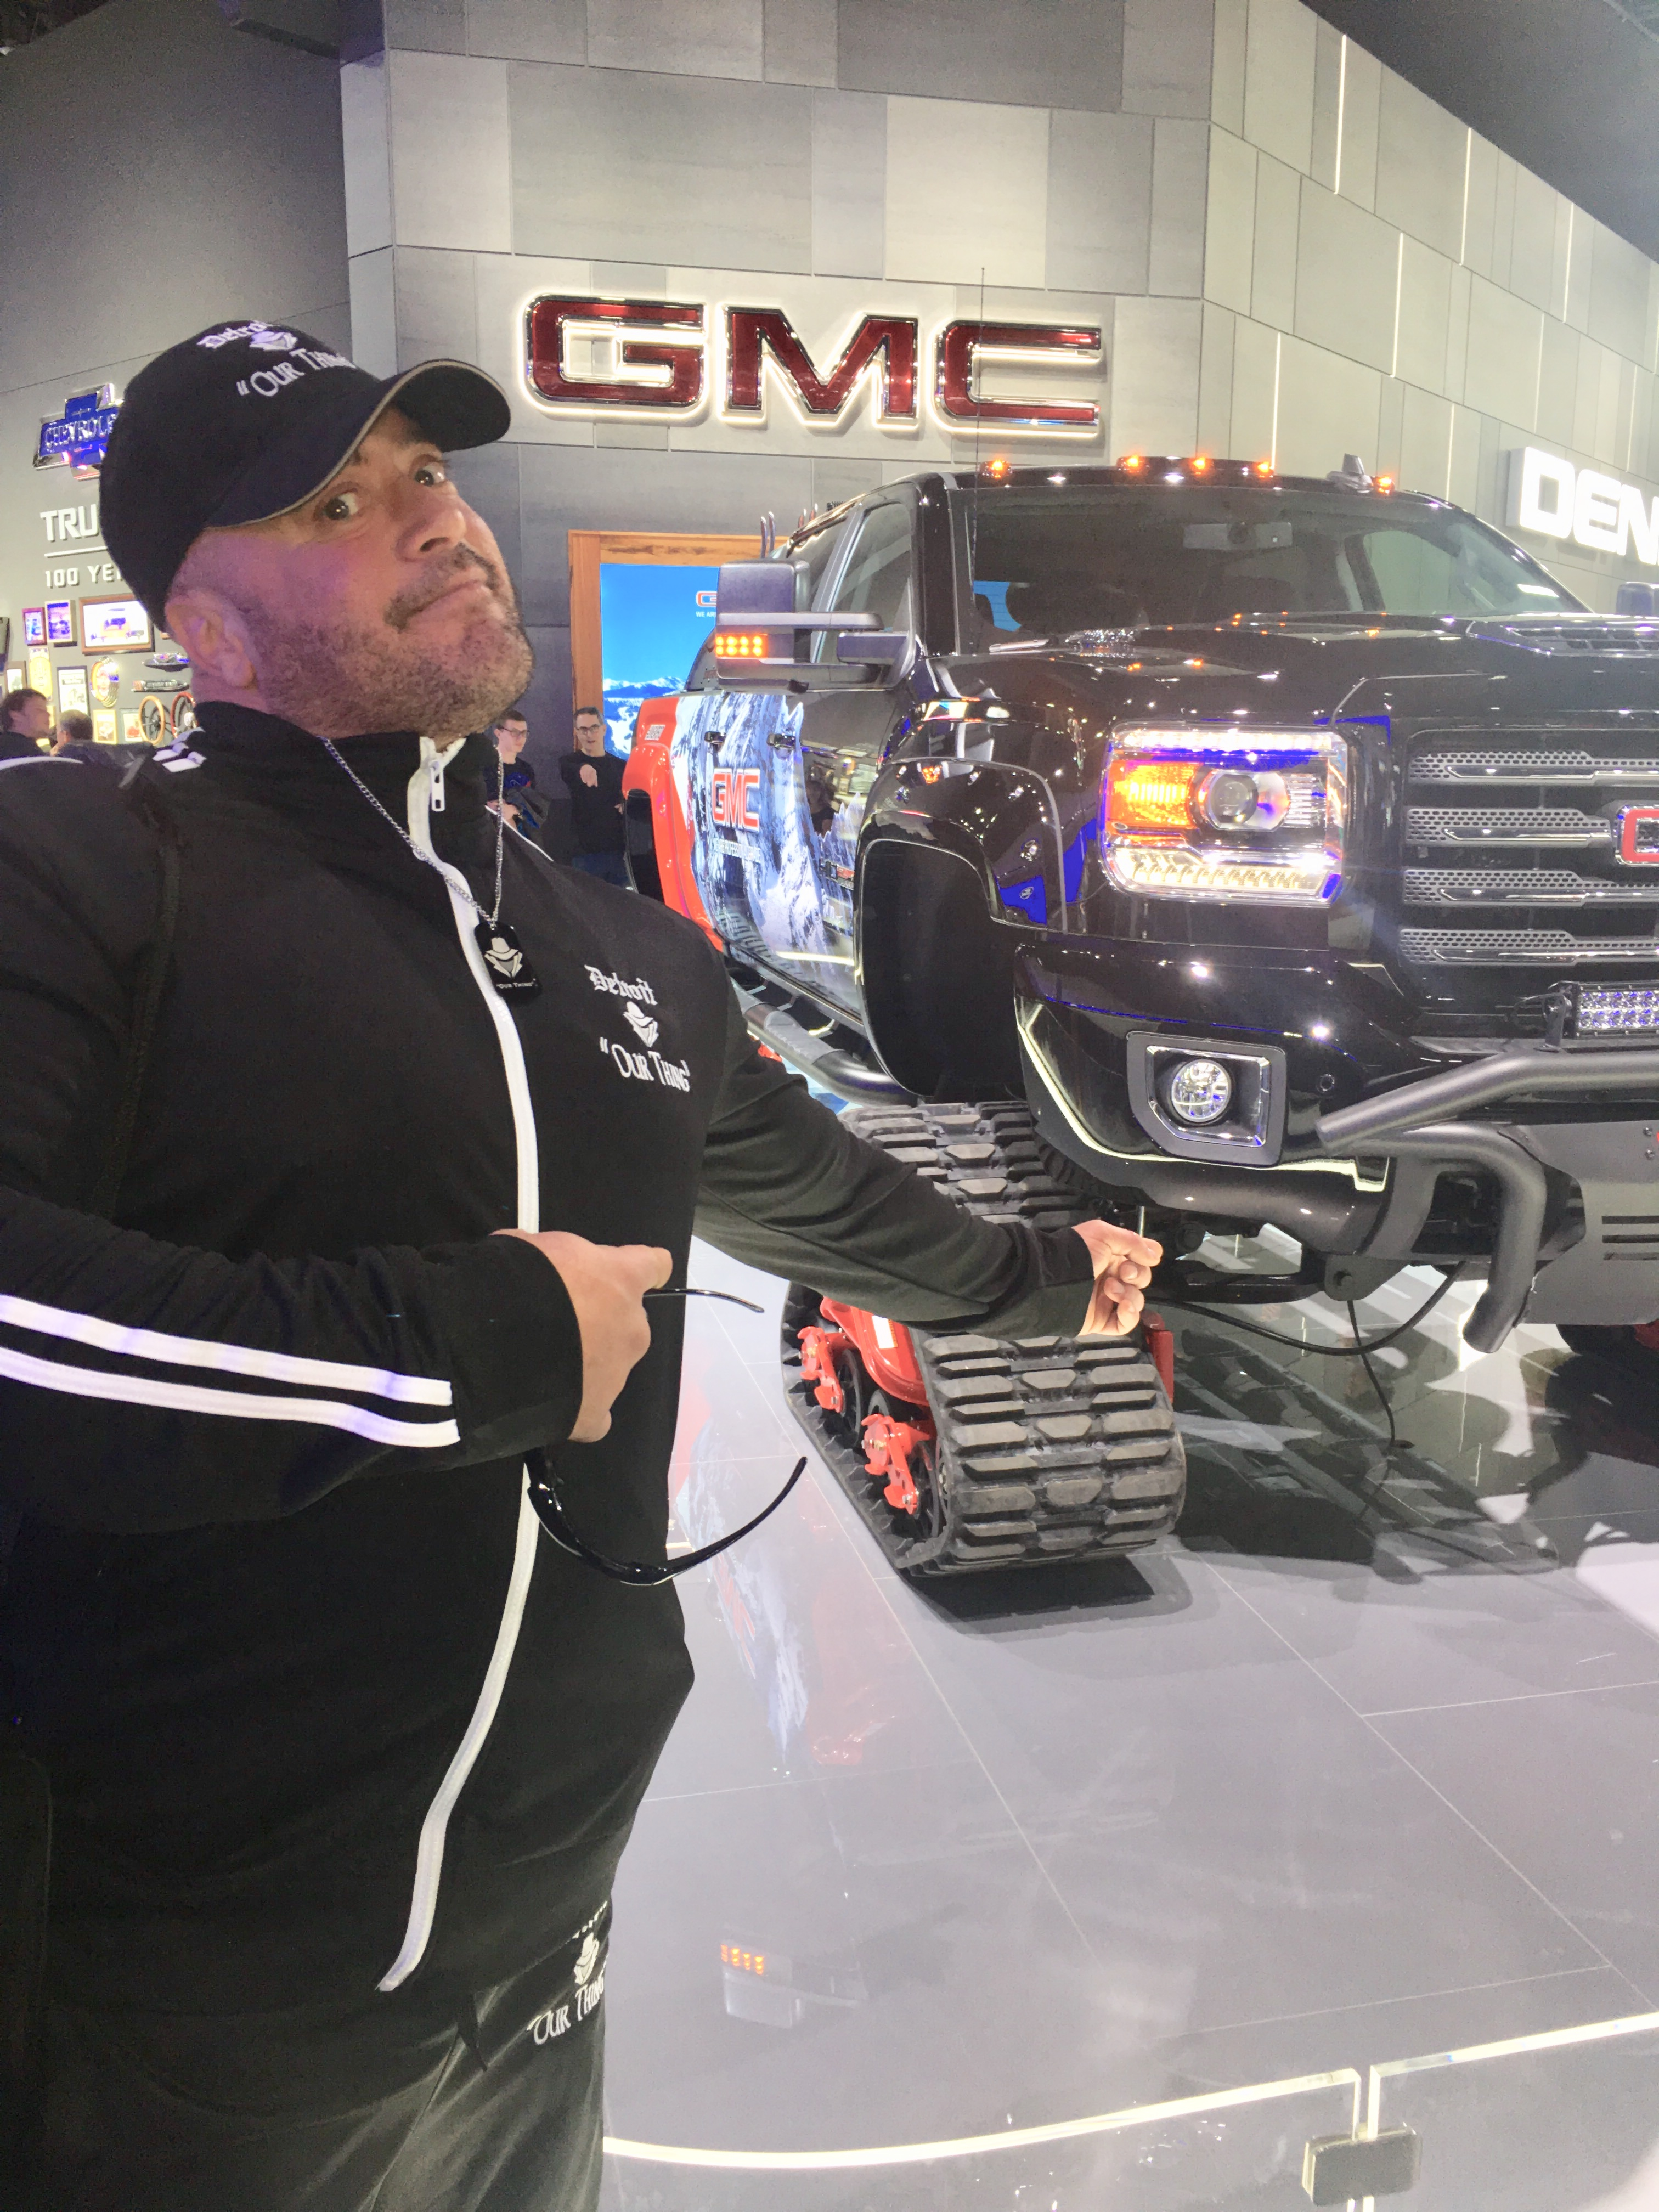 Gunner with a GMC track snow truck